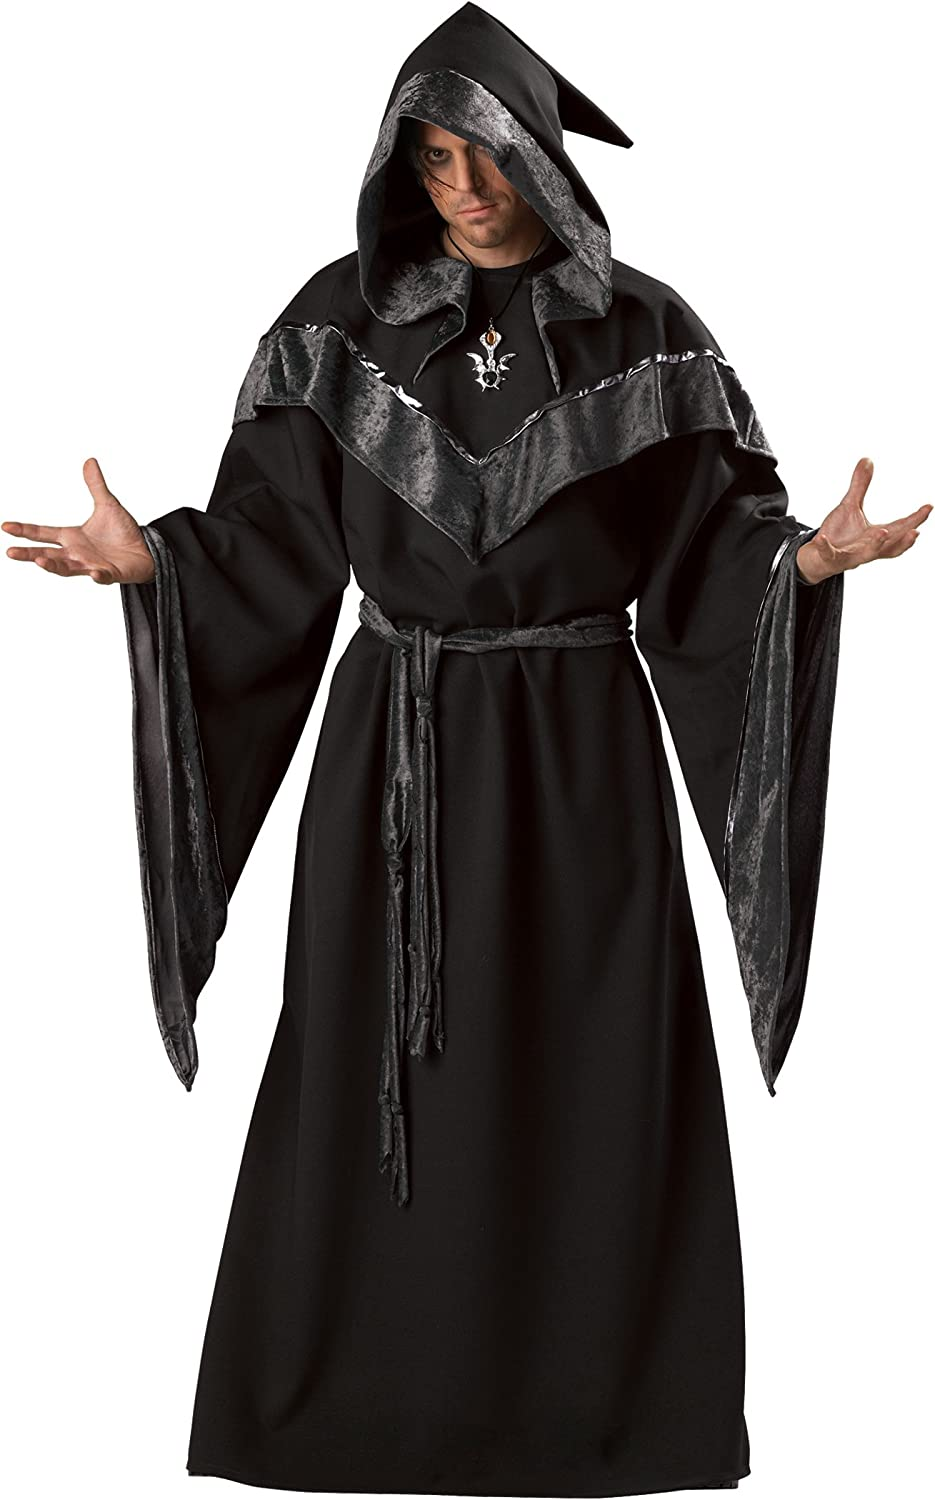 InCharacter Costumes Men's Dark Sorcerer Robe